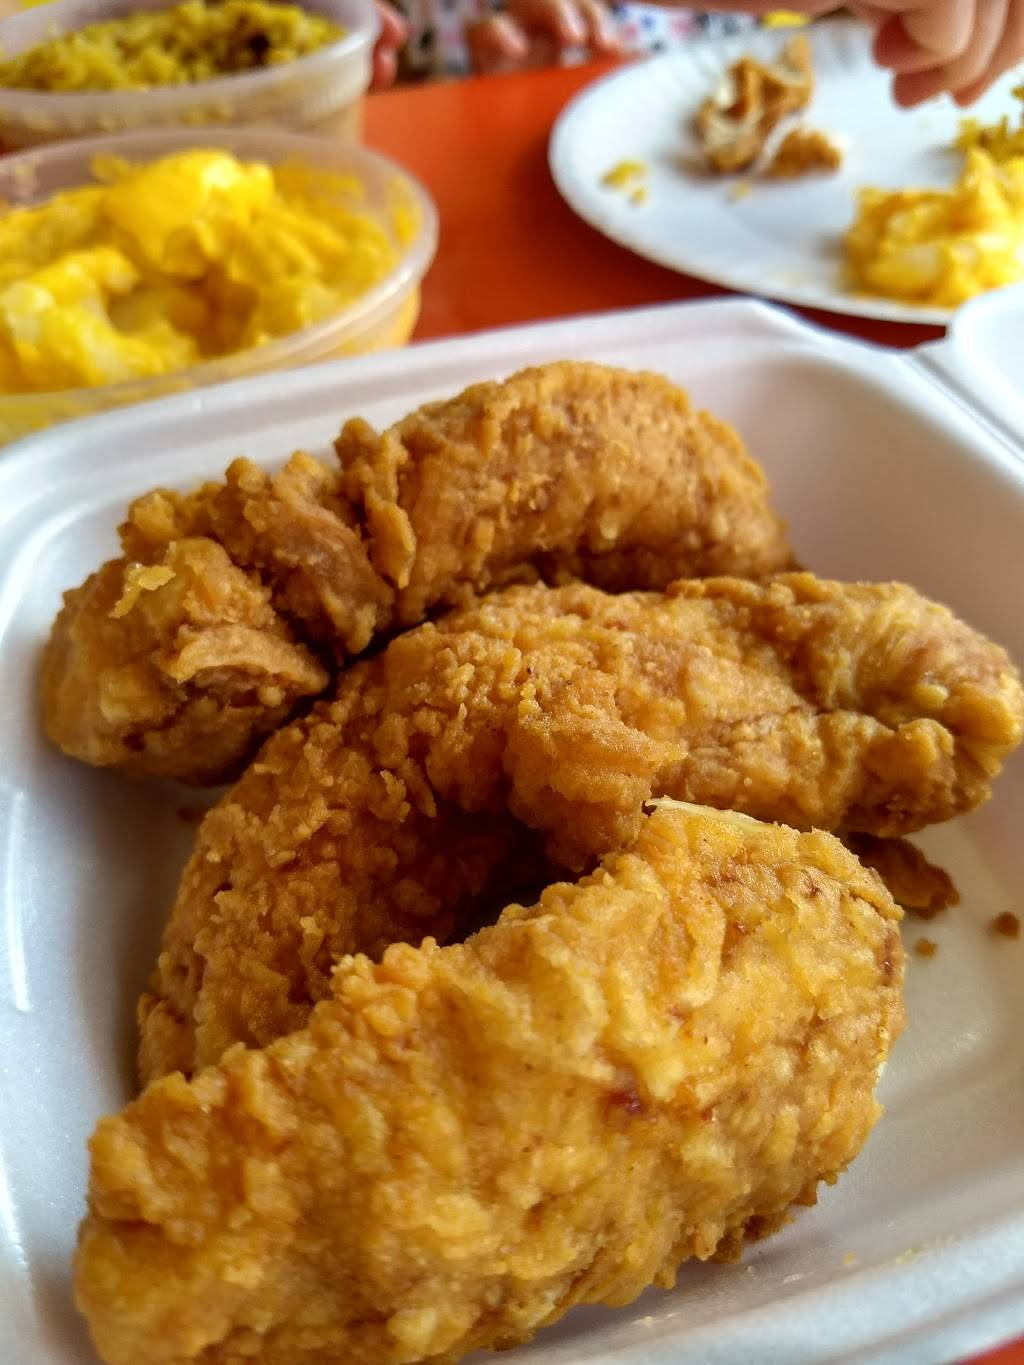 Chicken Delight | meal takeaway | 7718 Bergenline Ave, North Bergen, NJ 07047, USA | 2018694900 OR +1 201-869-4900